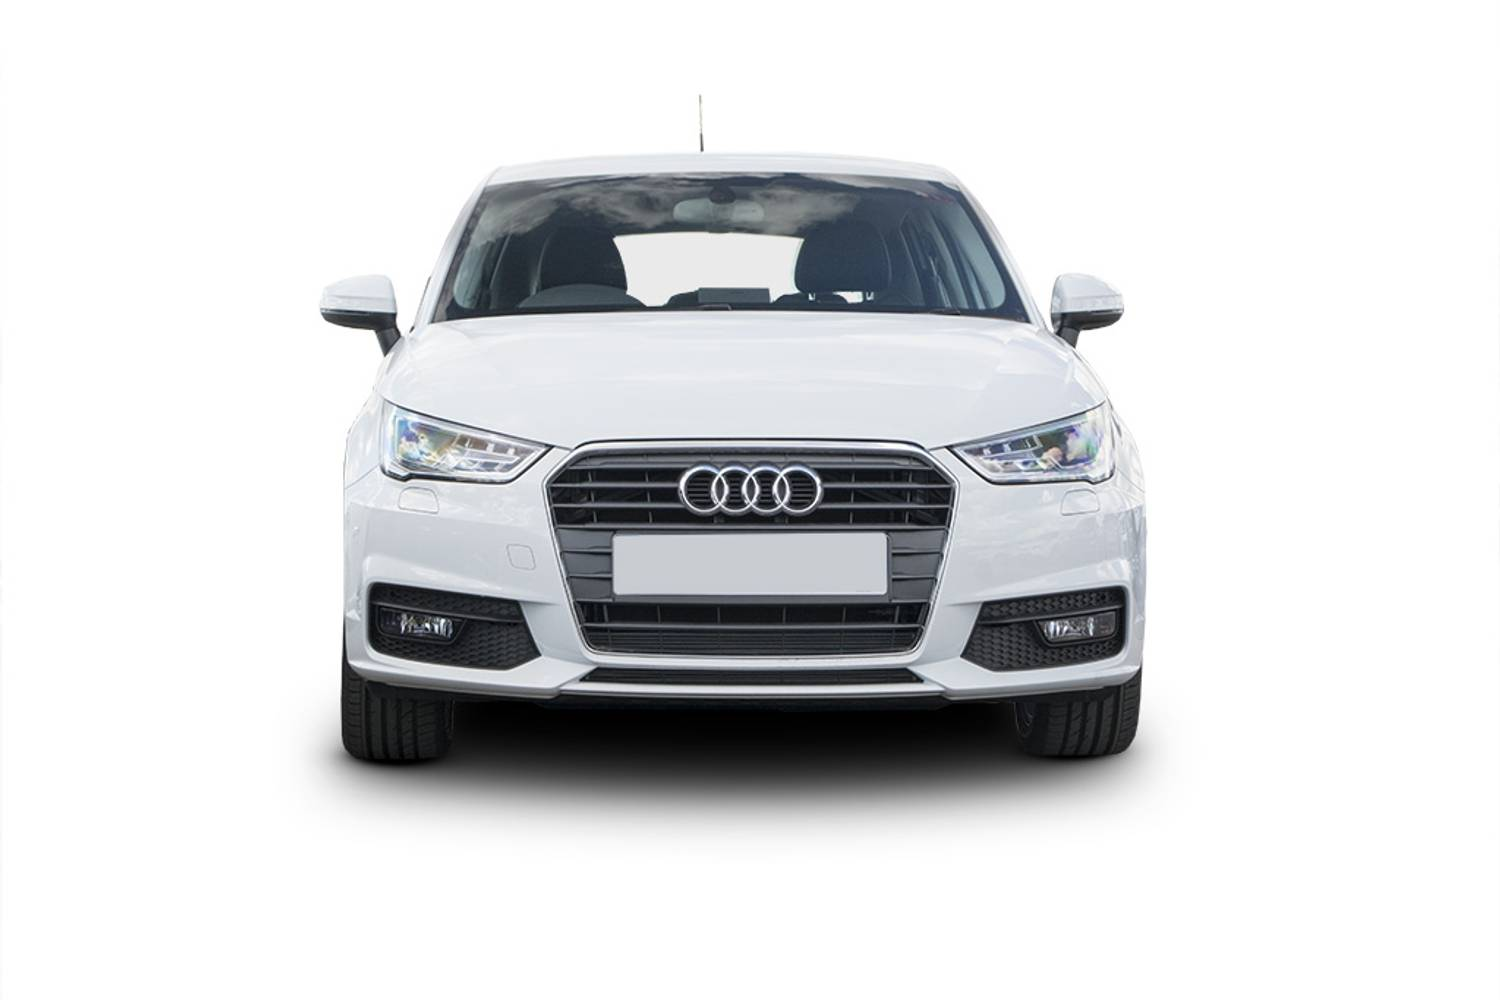 new audi a1 sportback 1.4 tfsi (150 ps) s line nav 5-door (2017